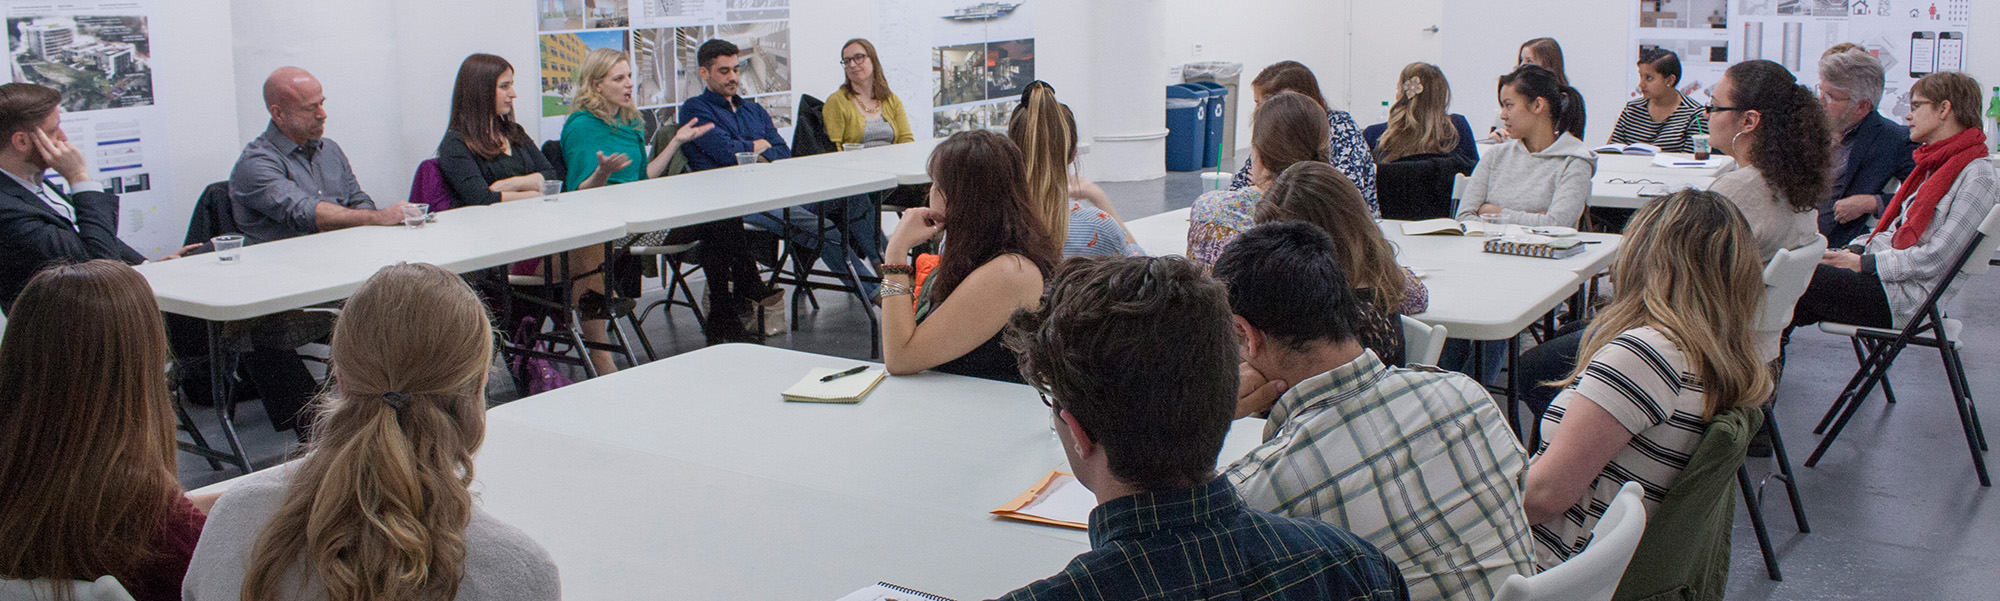 A panel of alumni take questions from UMass English majors in a large airy loft space in New York City.